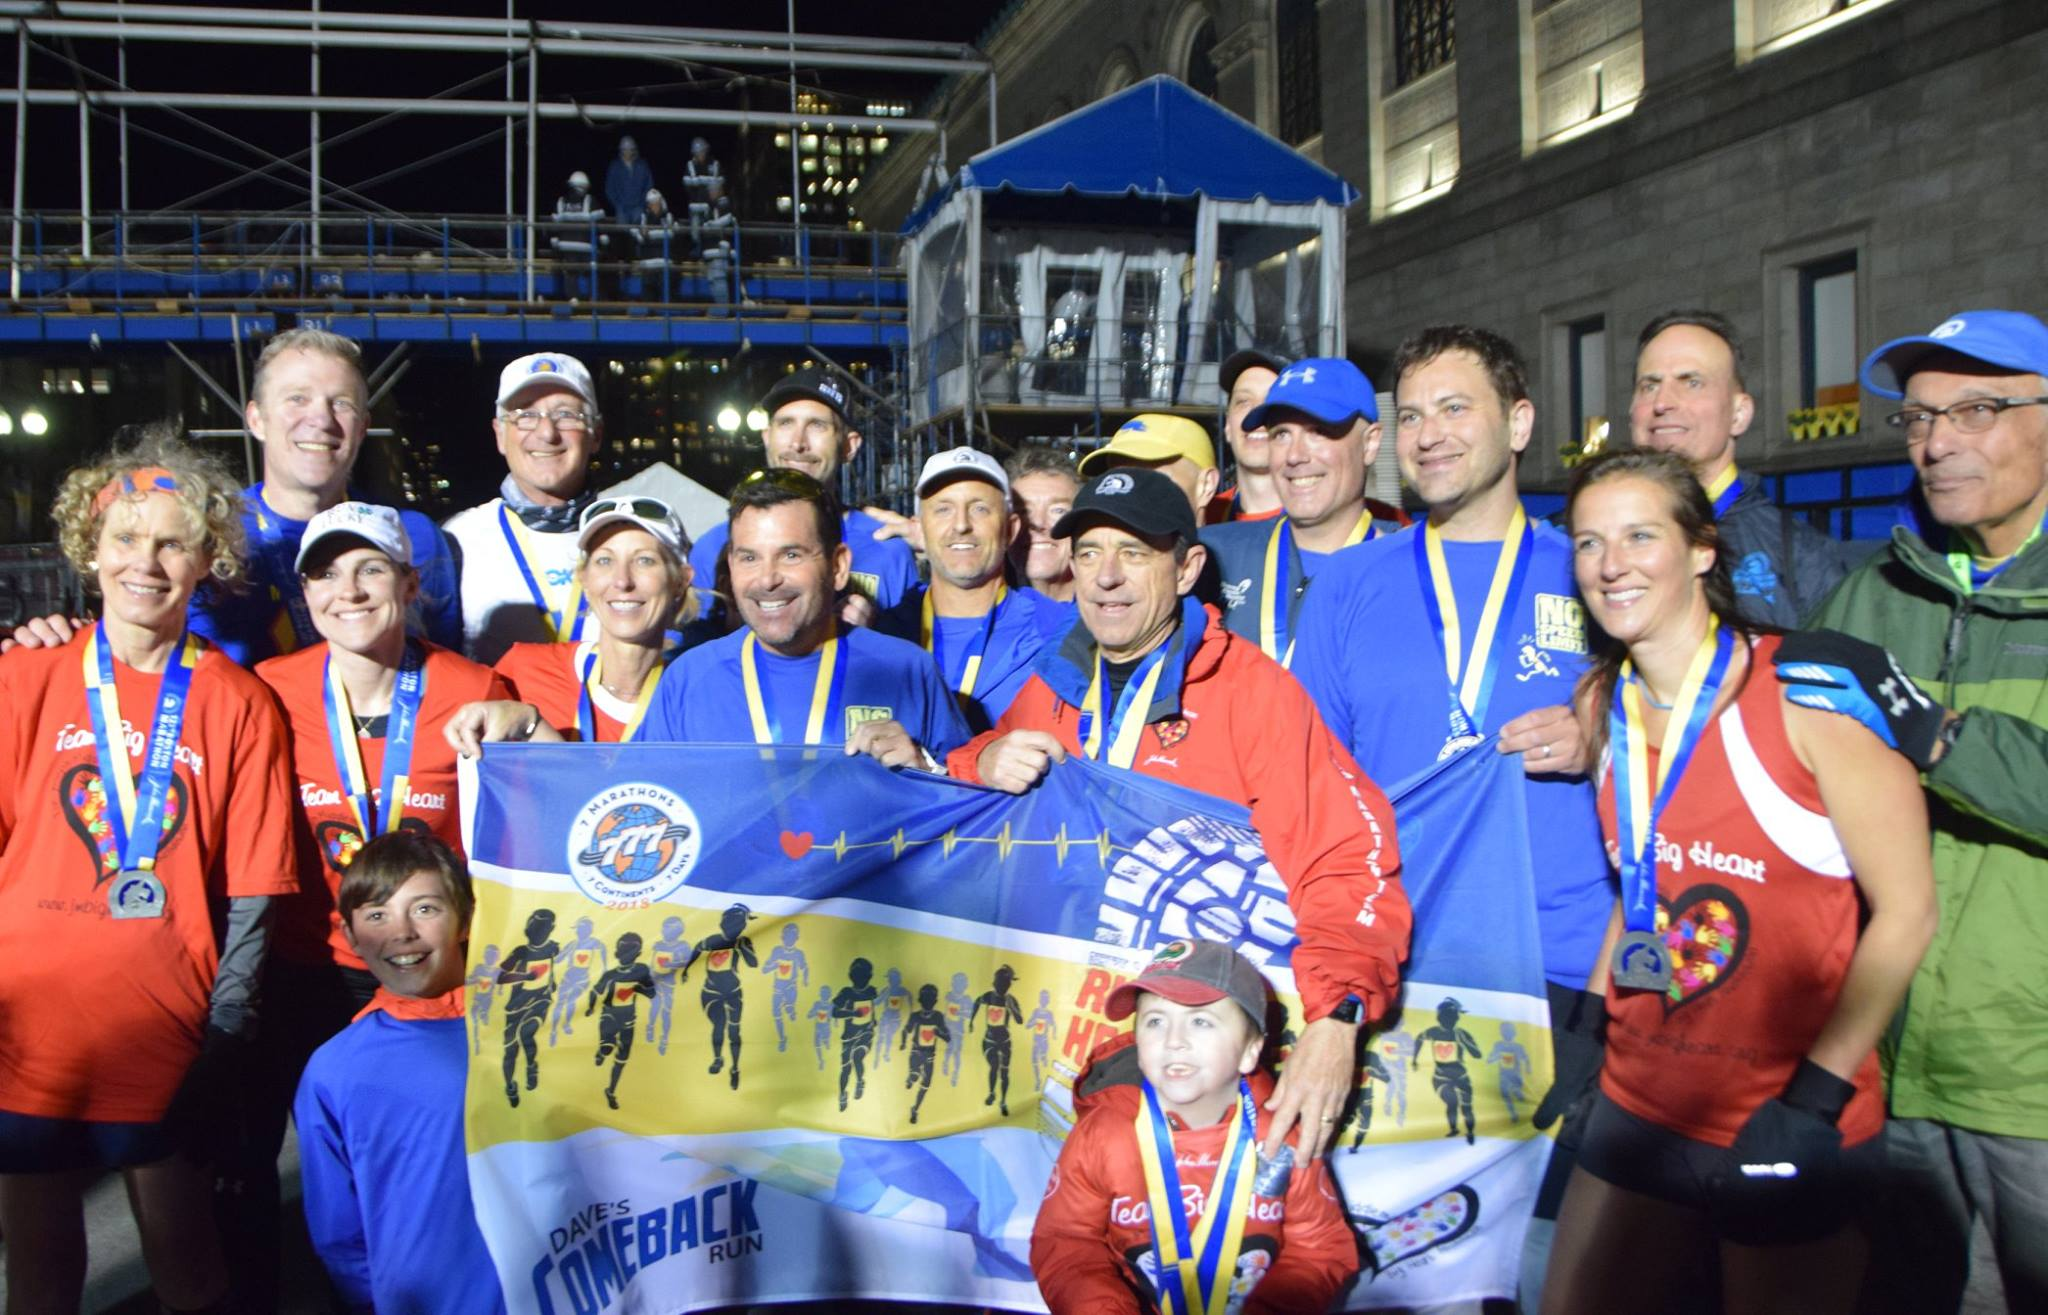 """Dave McGillivray and his team of runners pose at the finish line for the completion of his """"comeback run.""""   Bob McGillivray"""